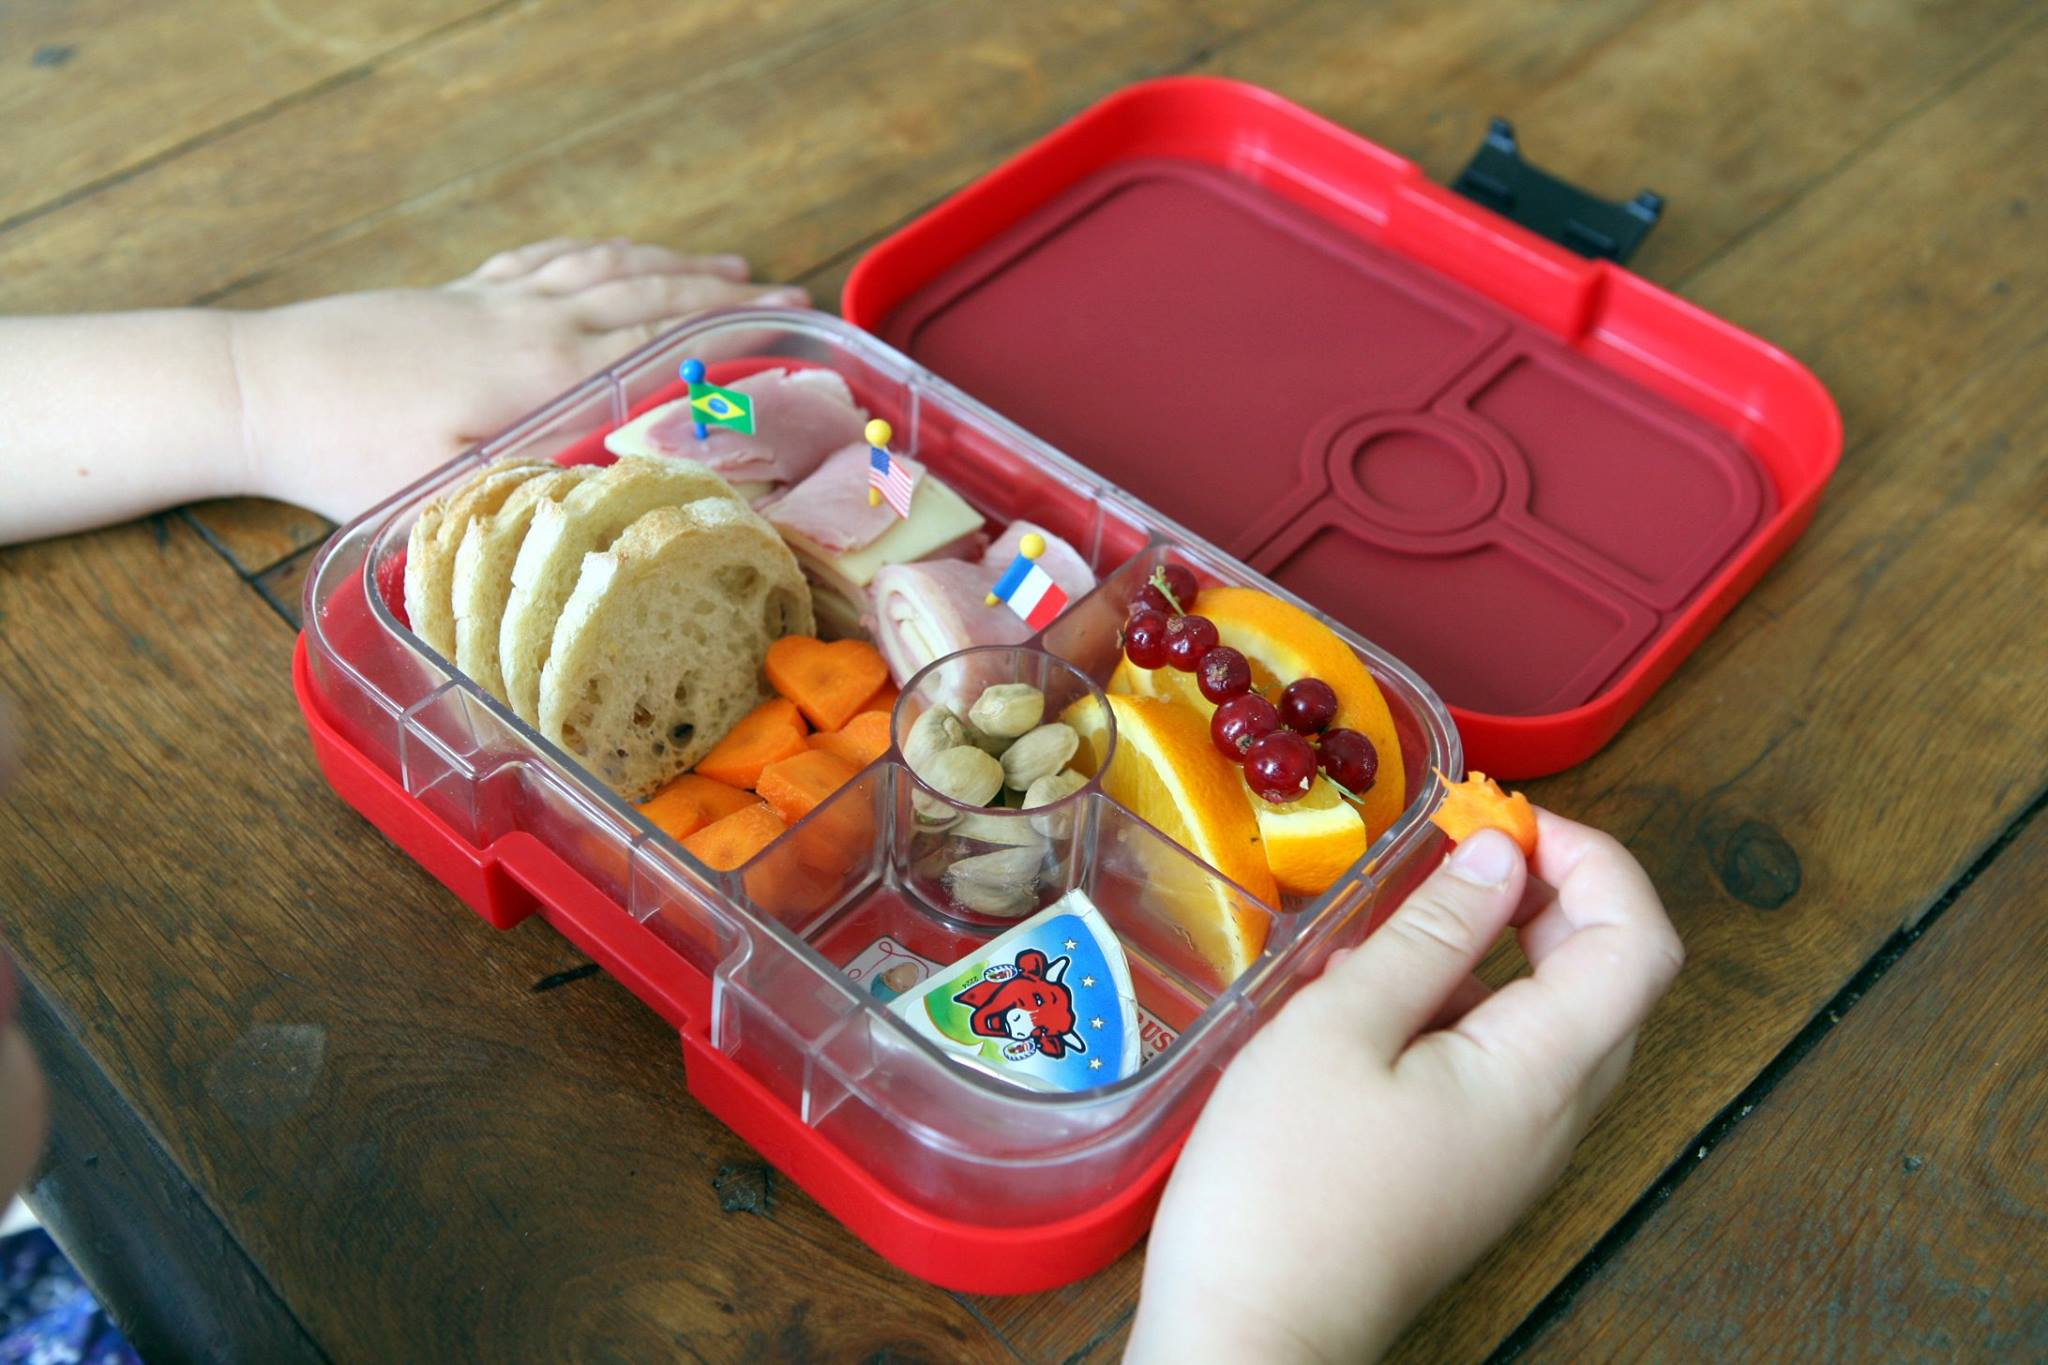 Yumbox Classic in Rocket Red